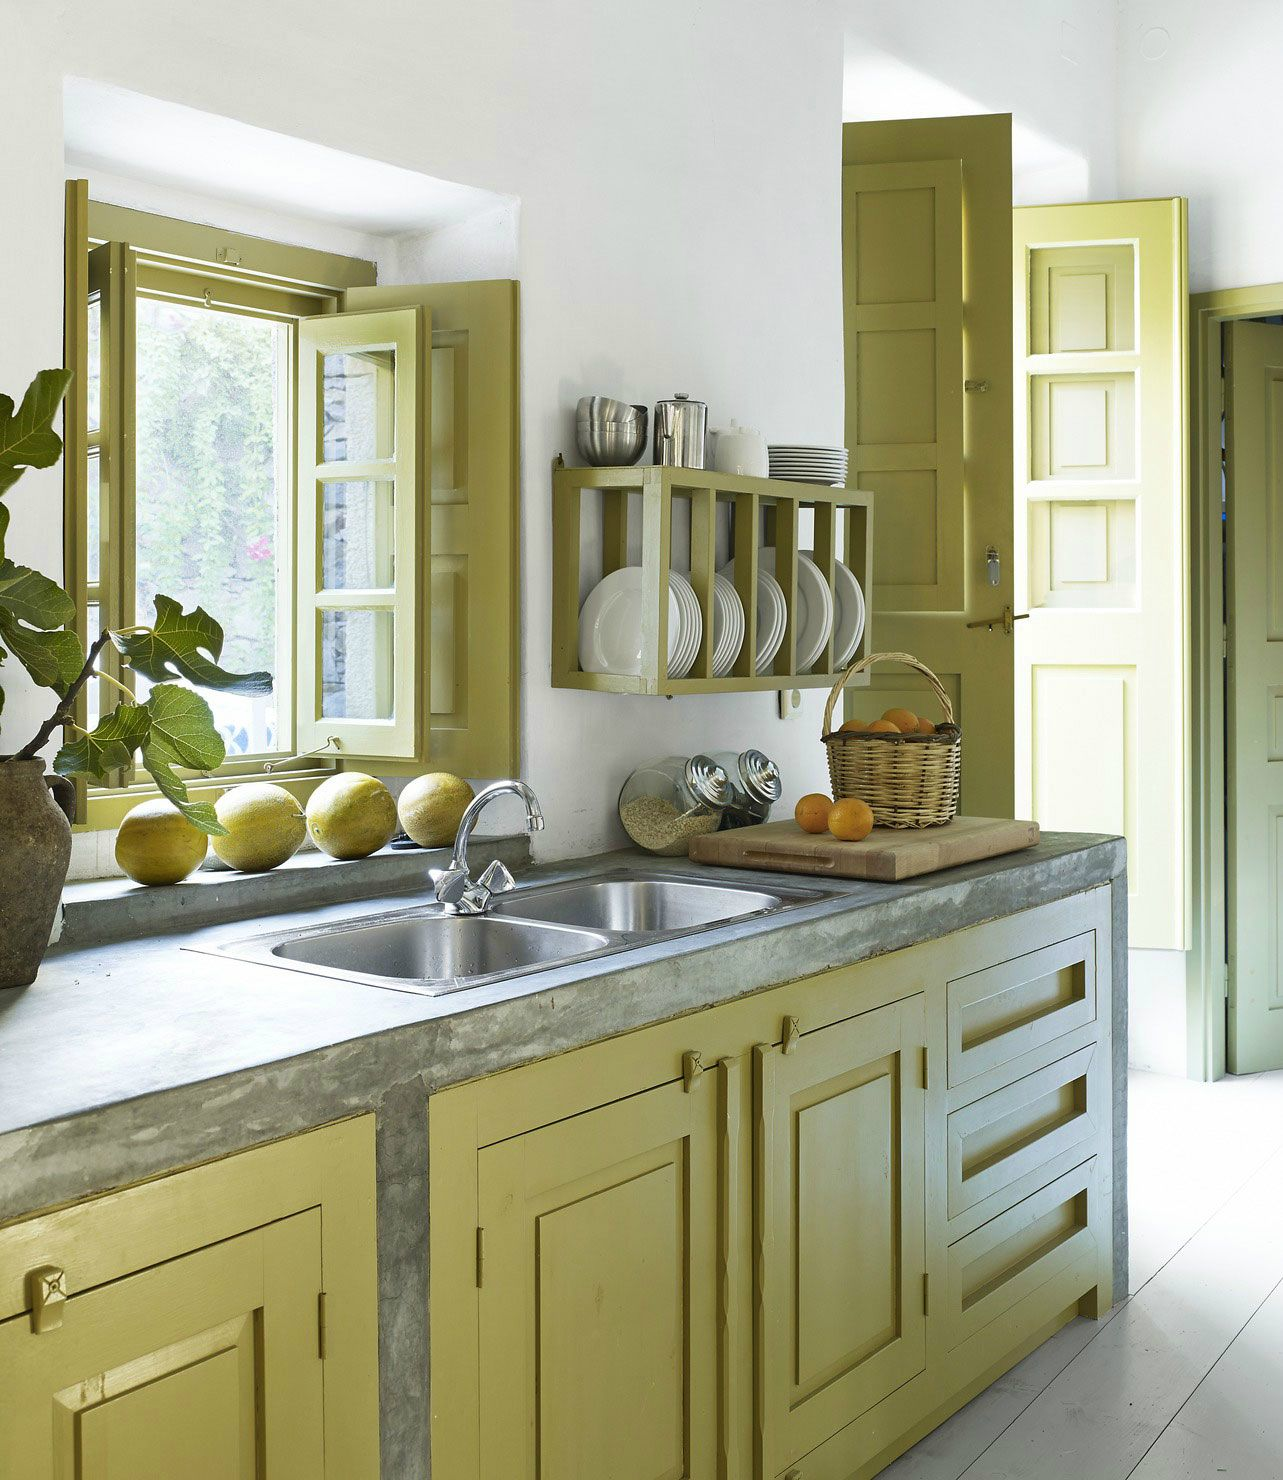 Elle decor predicts the color trends for 2017 yellow for Kitchen remodel styles